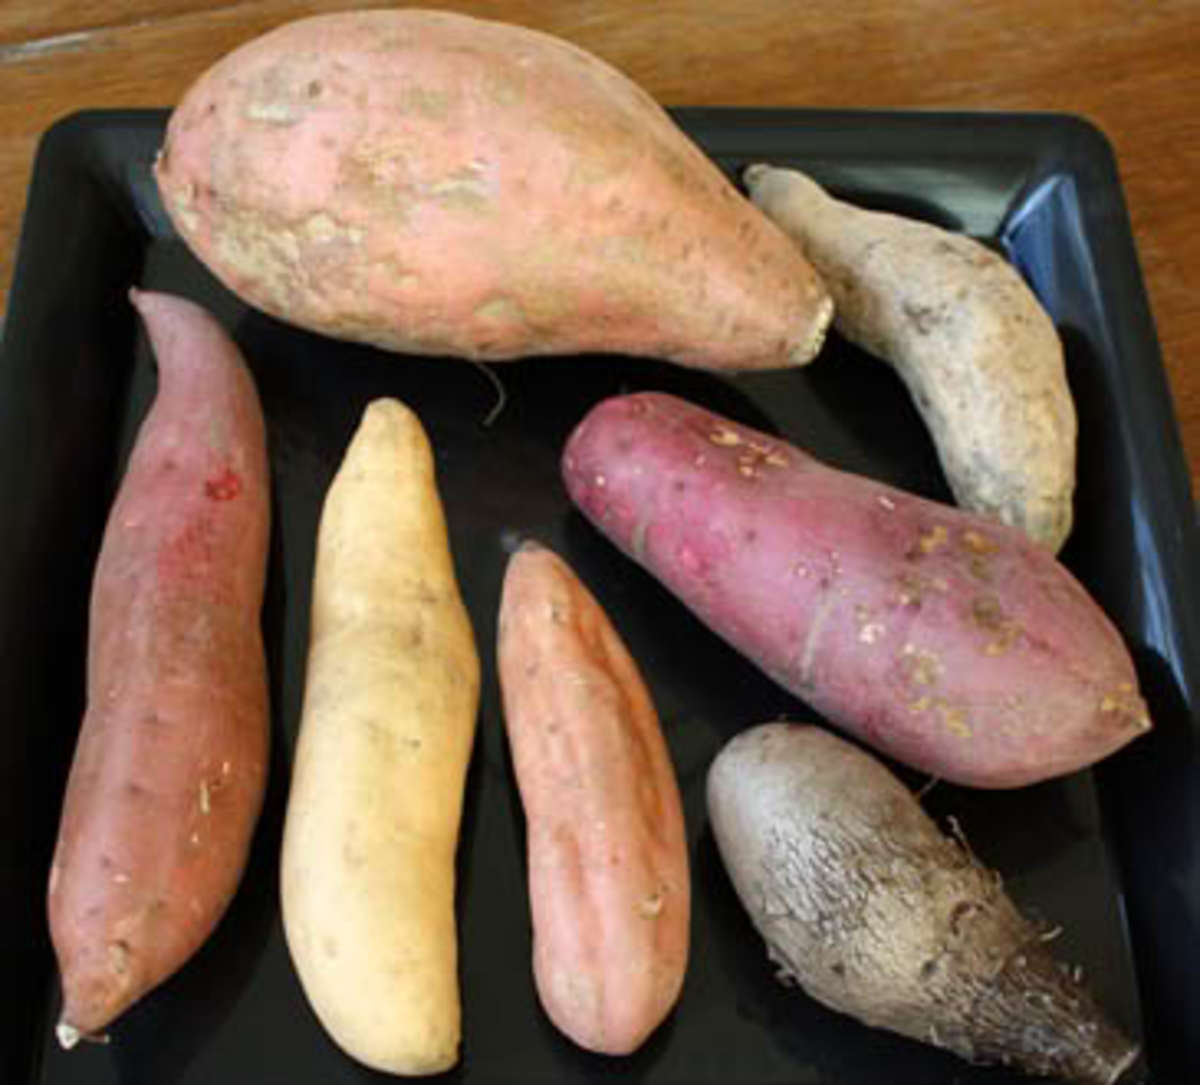 Yams or Sweet Potatoes?